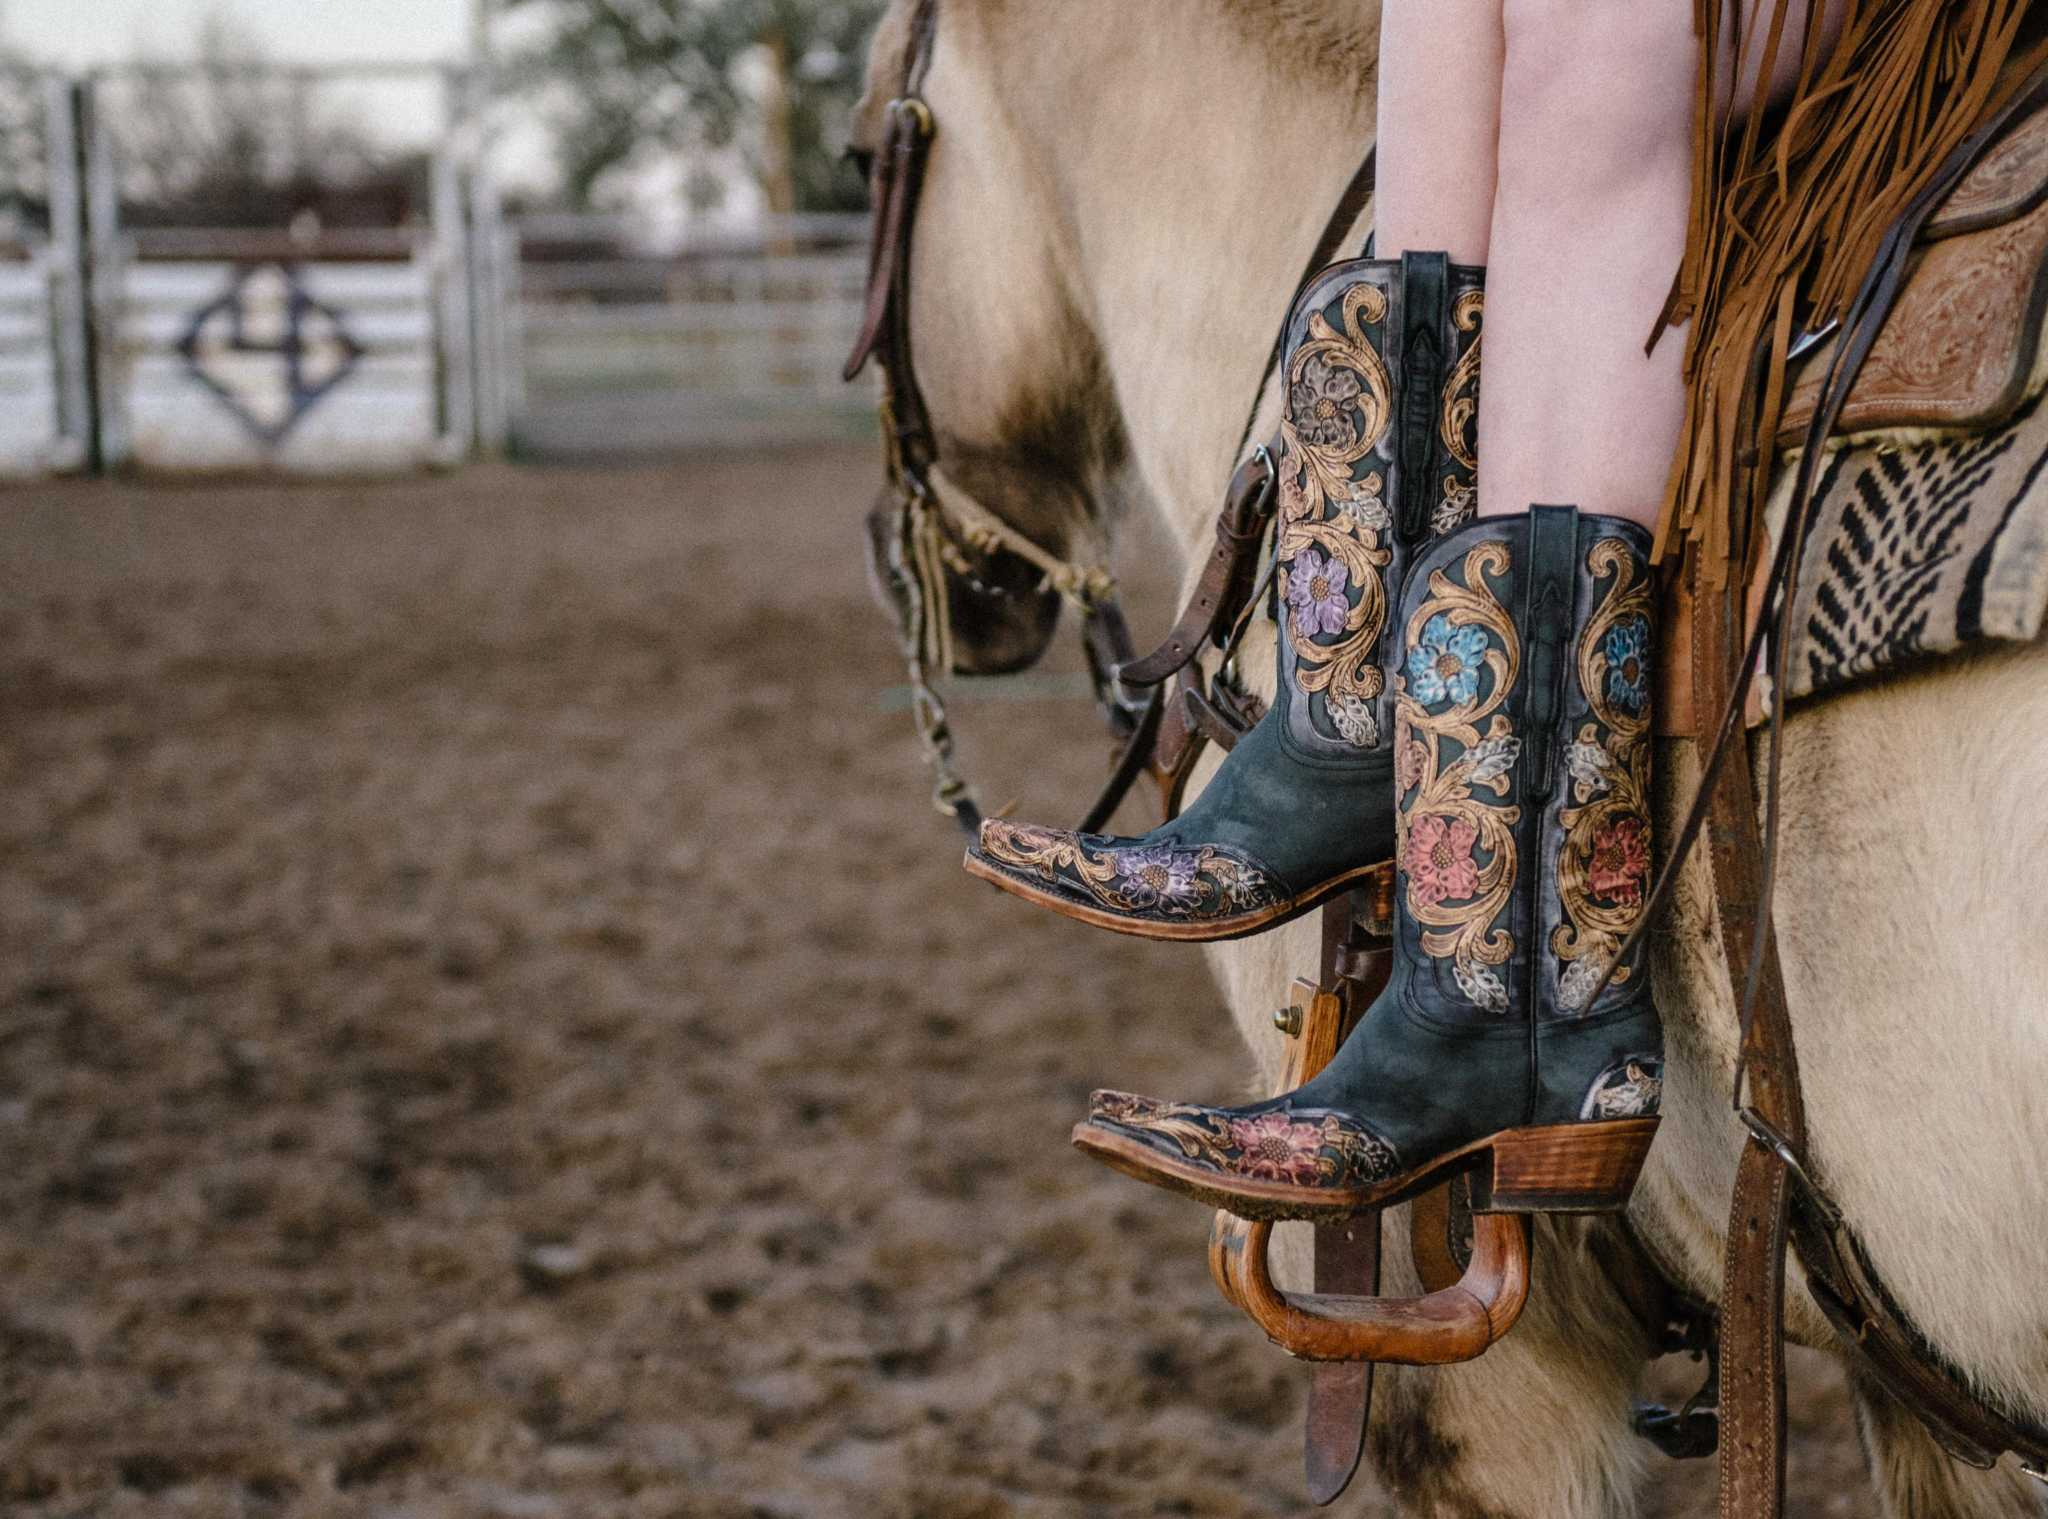 dating lucchese boots Discount western wear is your source for cinch jeans, tony lama boots, lucchese boots, childrens western wear, ariat boots, mens western wear, justin boots.